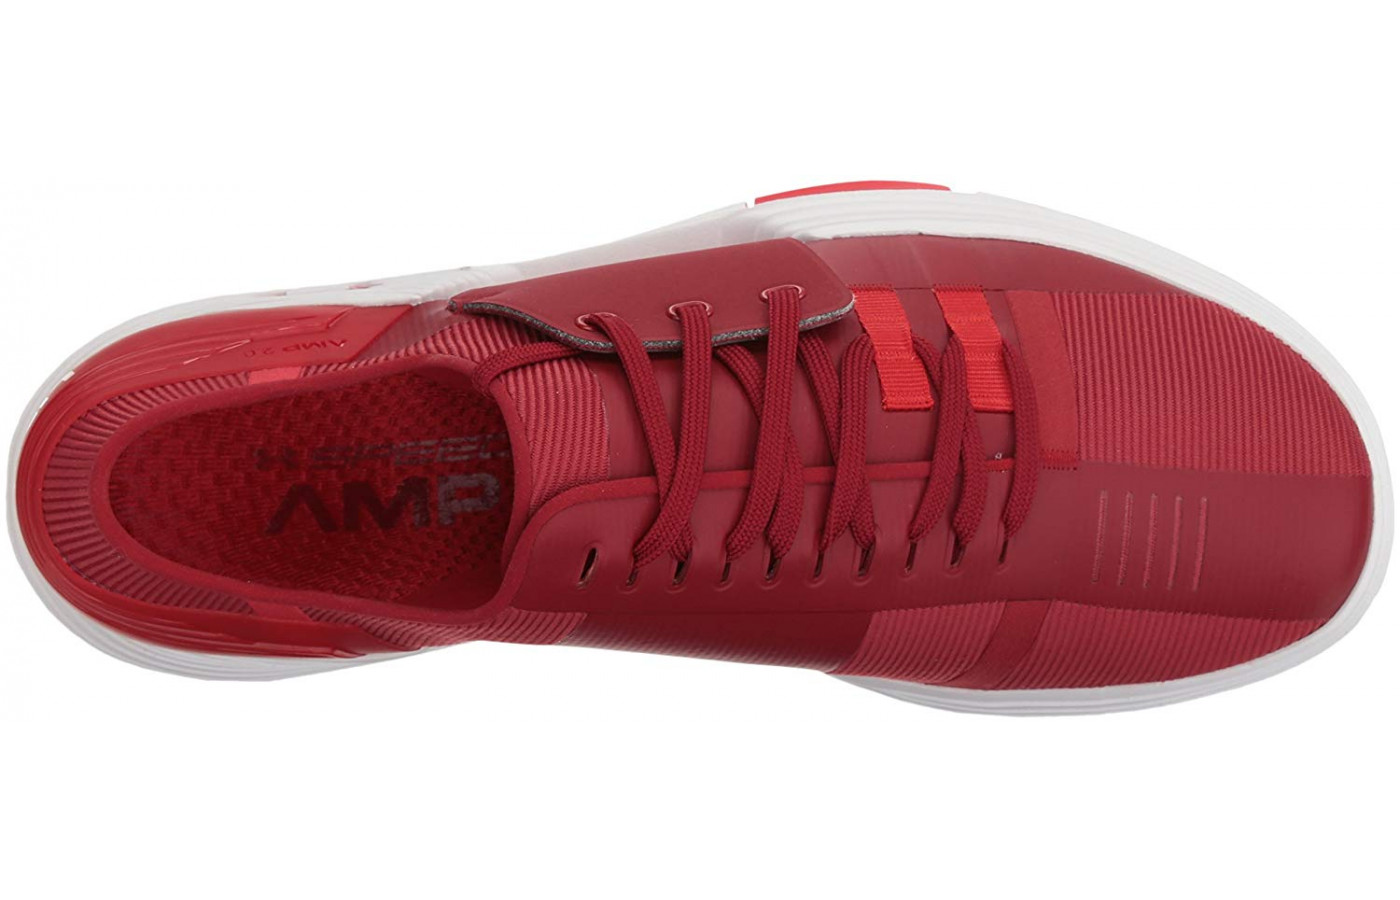 Under Armour Speedform Amp 2.0 Top View